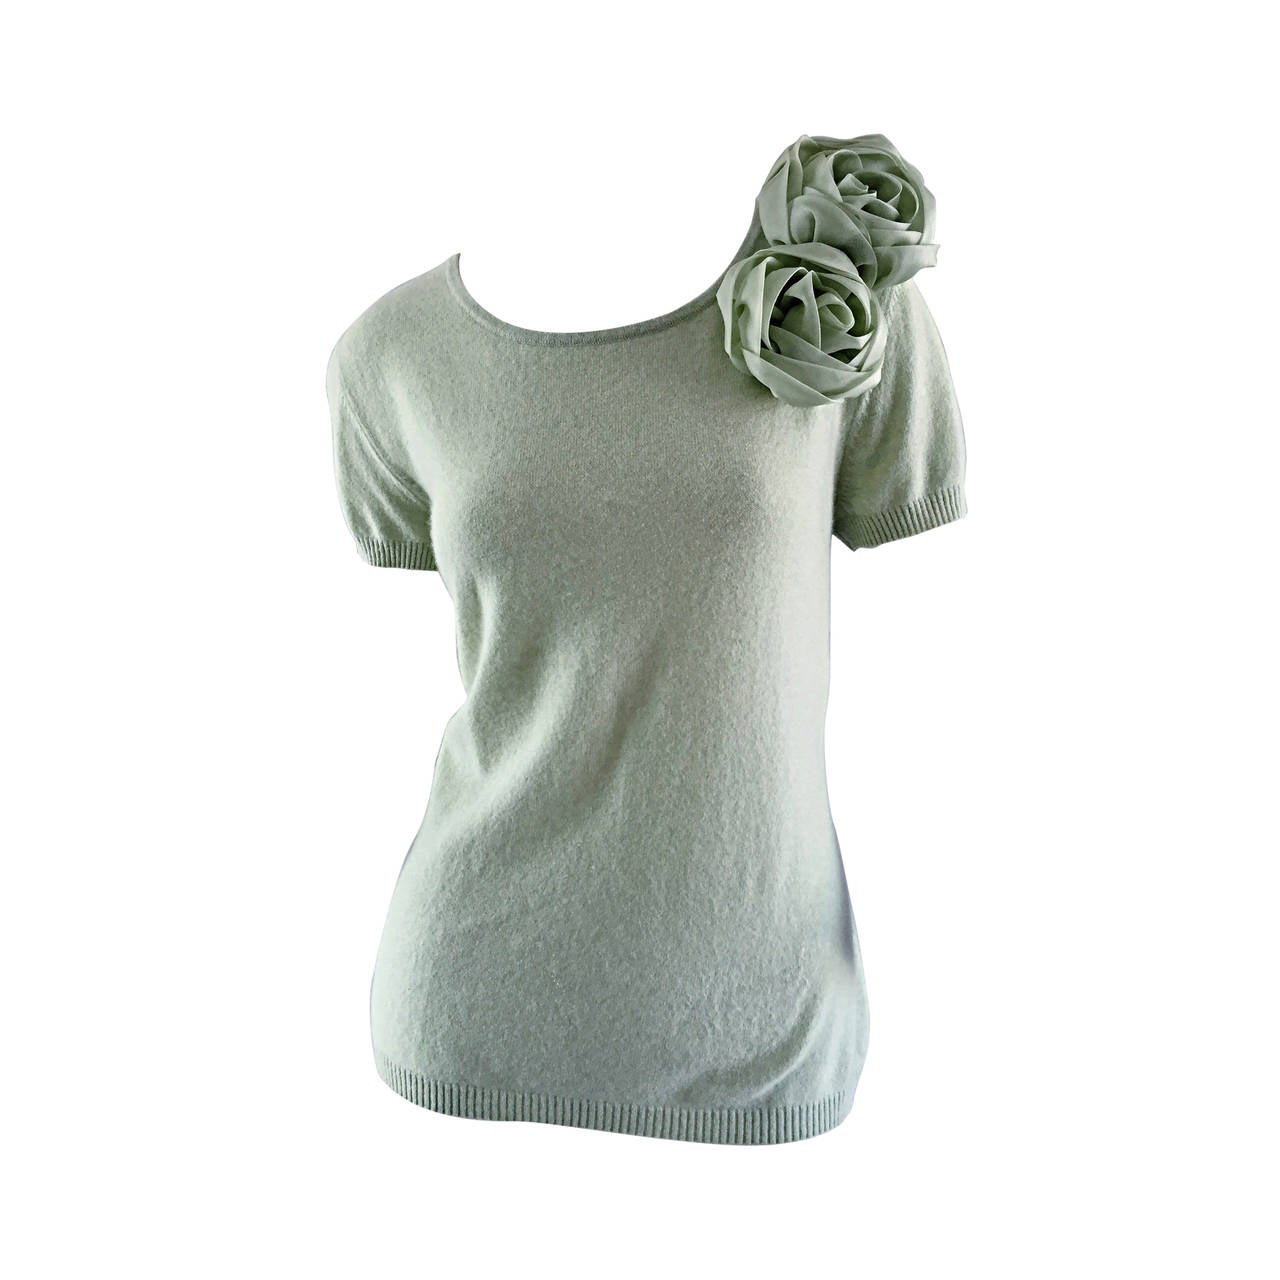 Escada Light Green Short Sleeve Cashmere Sweater w/ Rosettes + Flower Appliqués